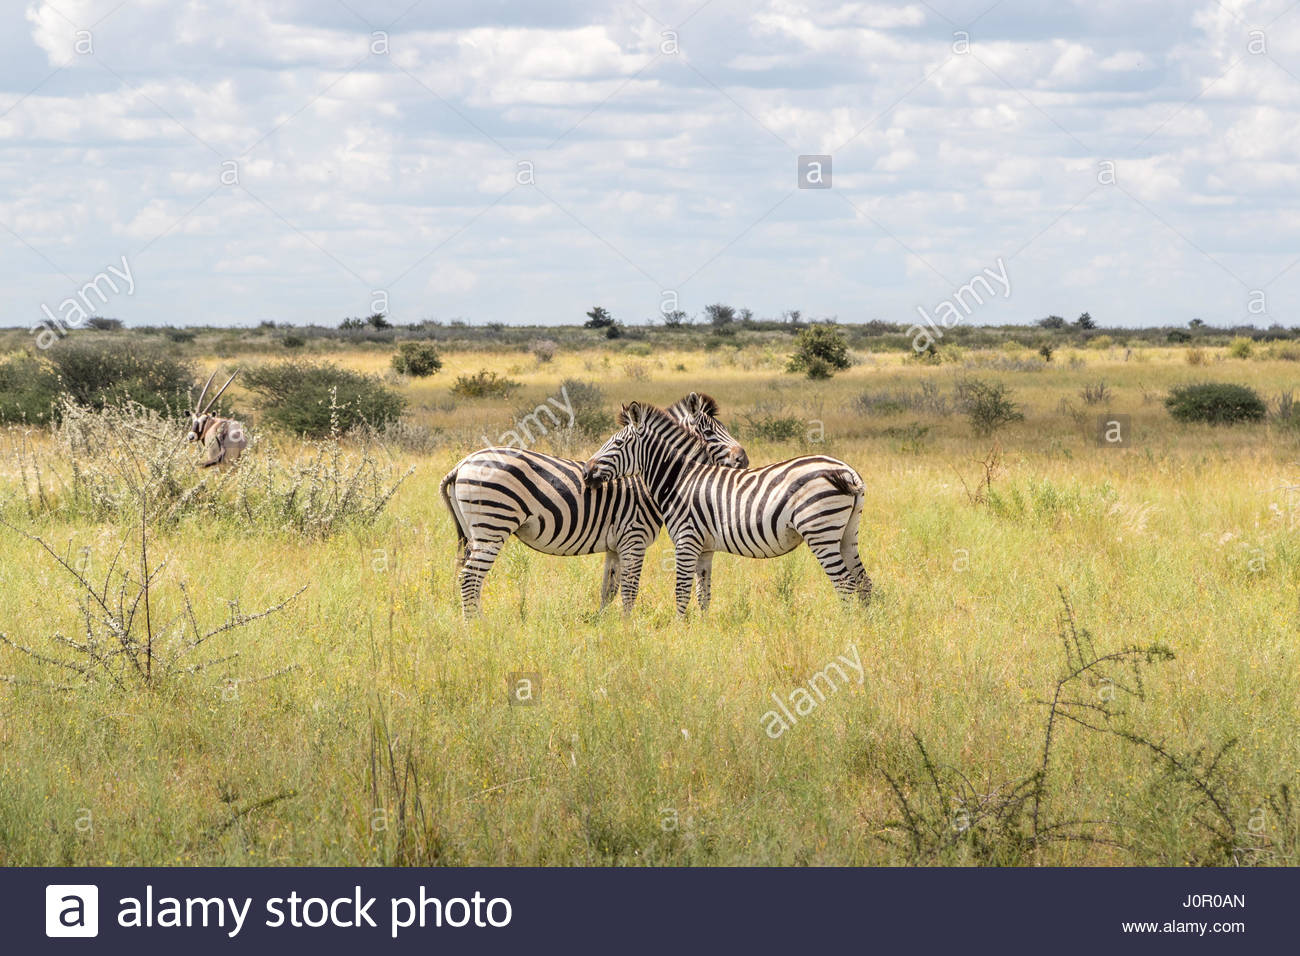 A pair of Zebra displaying typical grooming and chin resting behaviour in Nxai Pans, Botswana Stock Photo